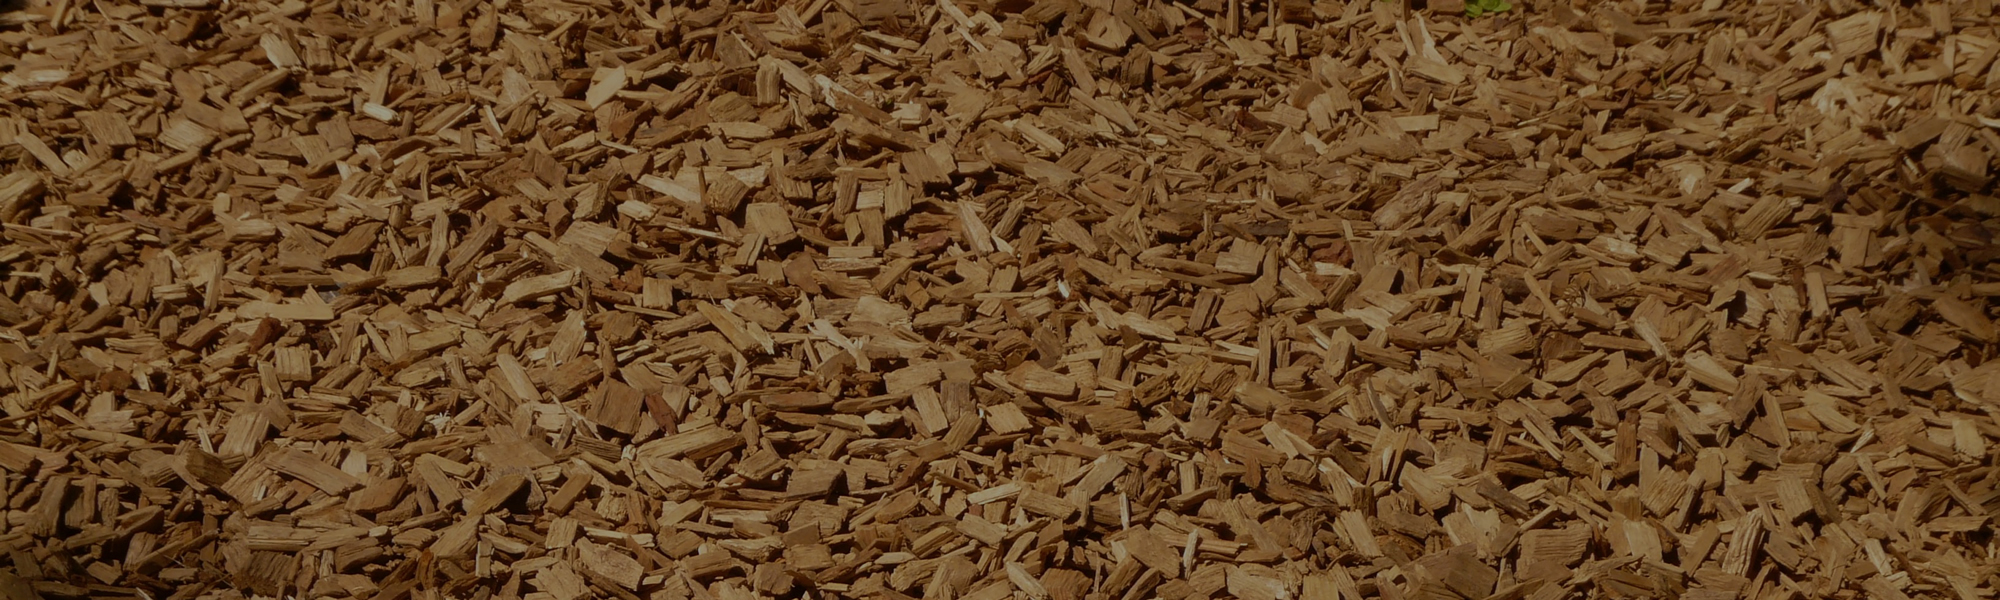 Channahon Mulch Installation and Flower Bed Re-Mulch Services Illinois